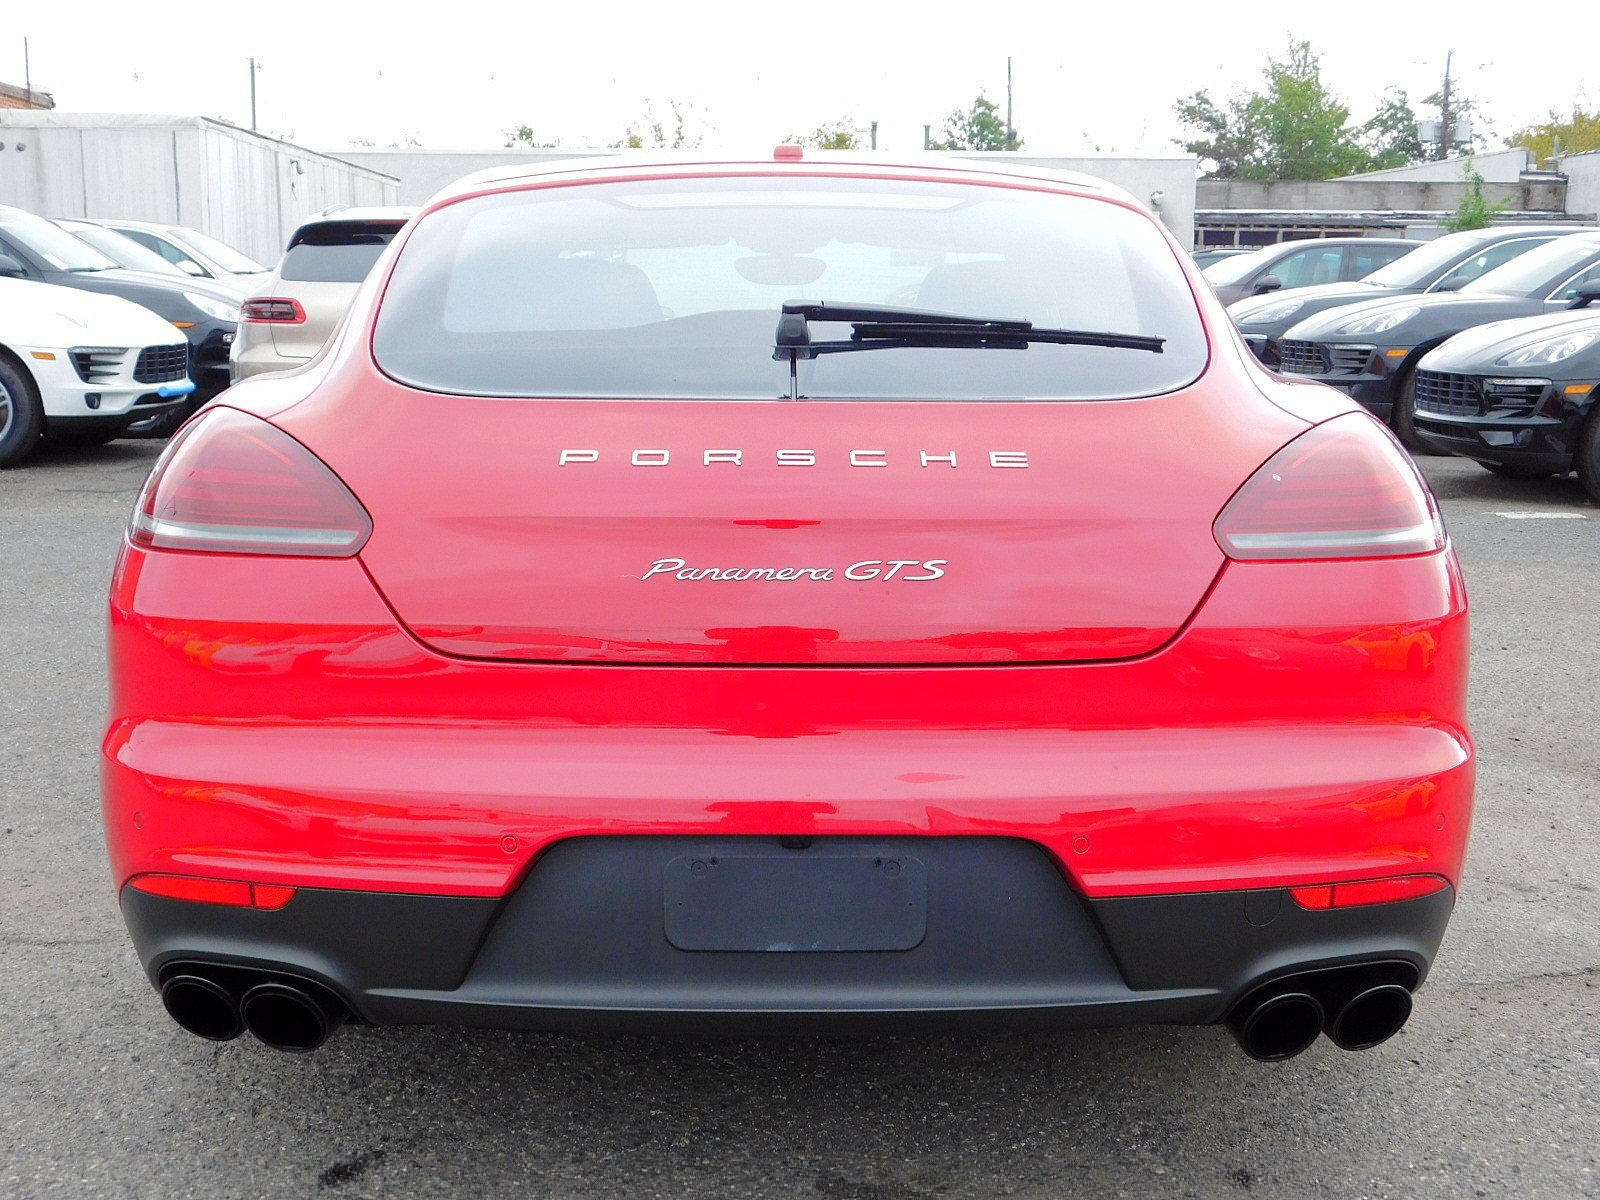 Certified Pre-Owned 2016 Porsche Panamera GTS